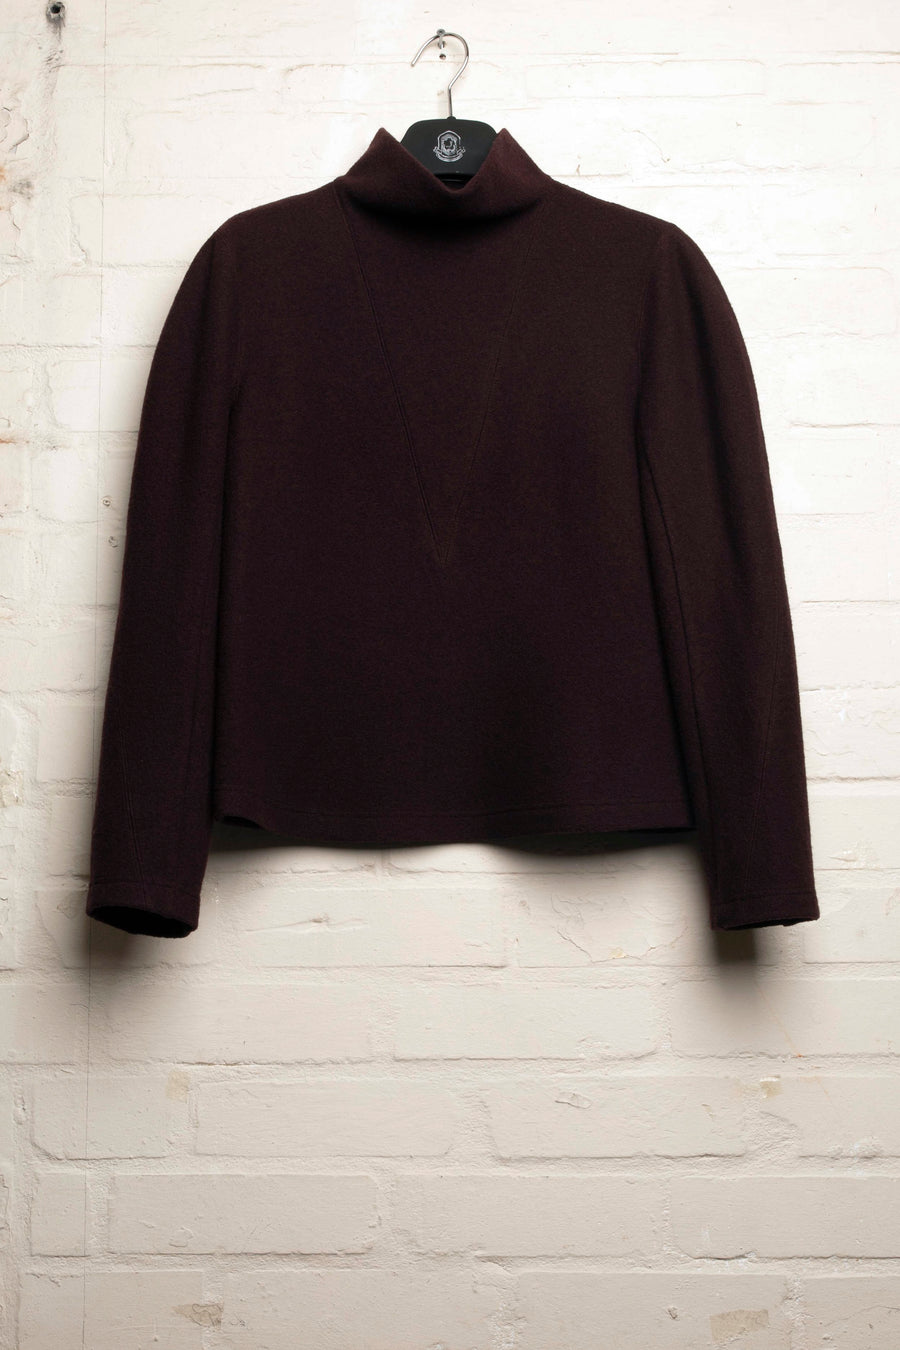 TRE – TURTLE NECK SWEATSHIRT